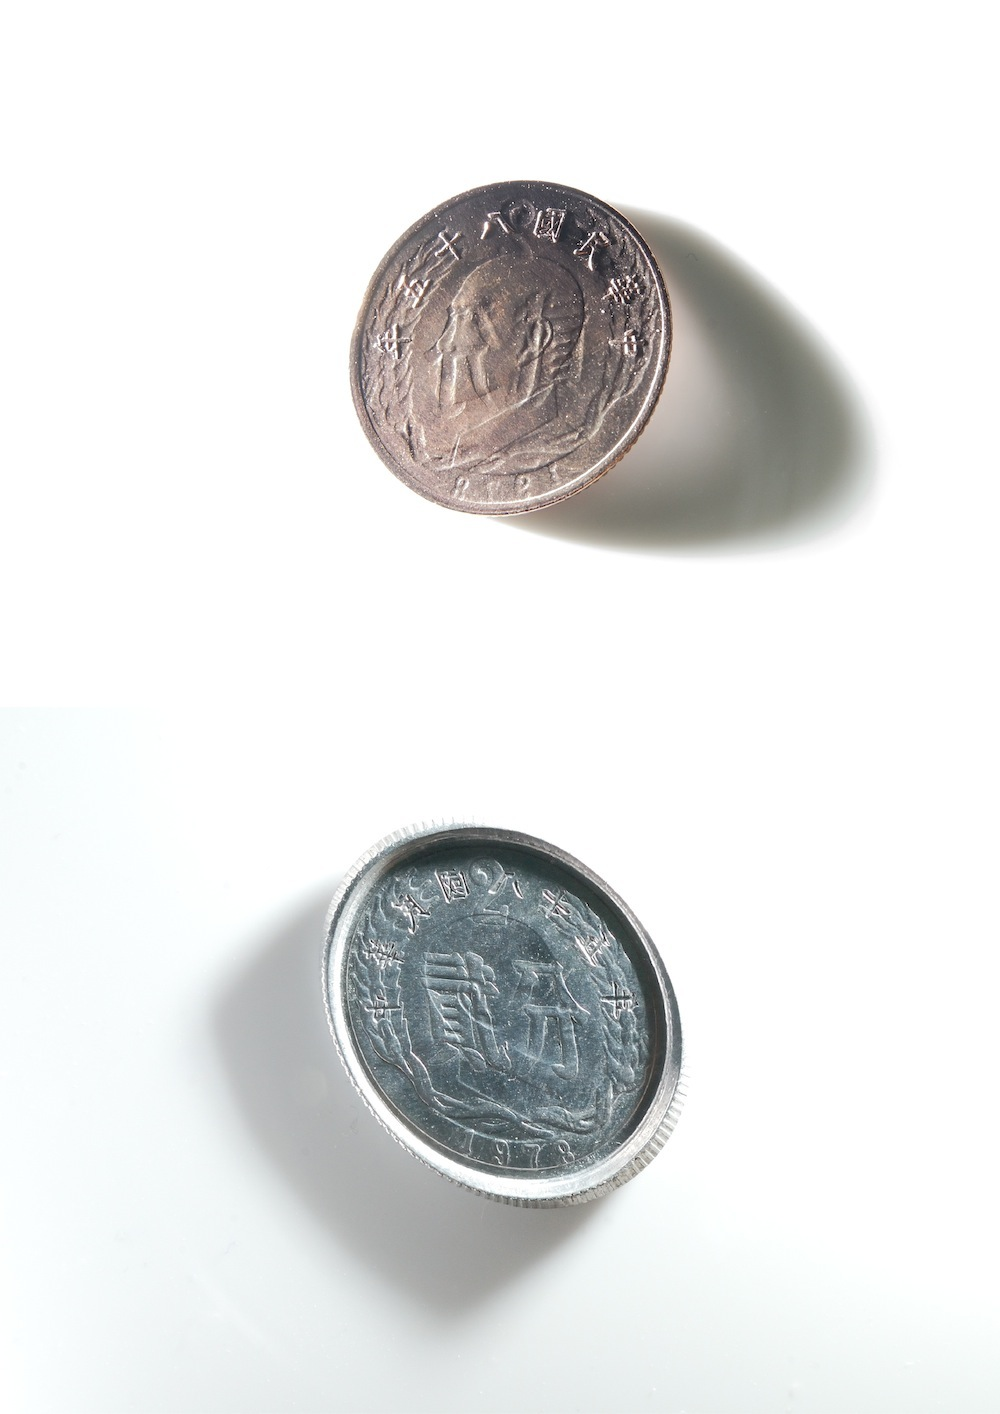 Coins (1978 CNY 2 Cents, Minguo 85th 1 Dollar)